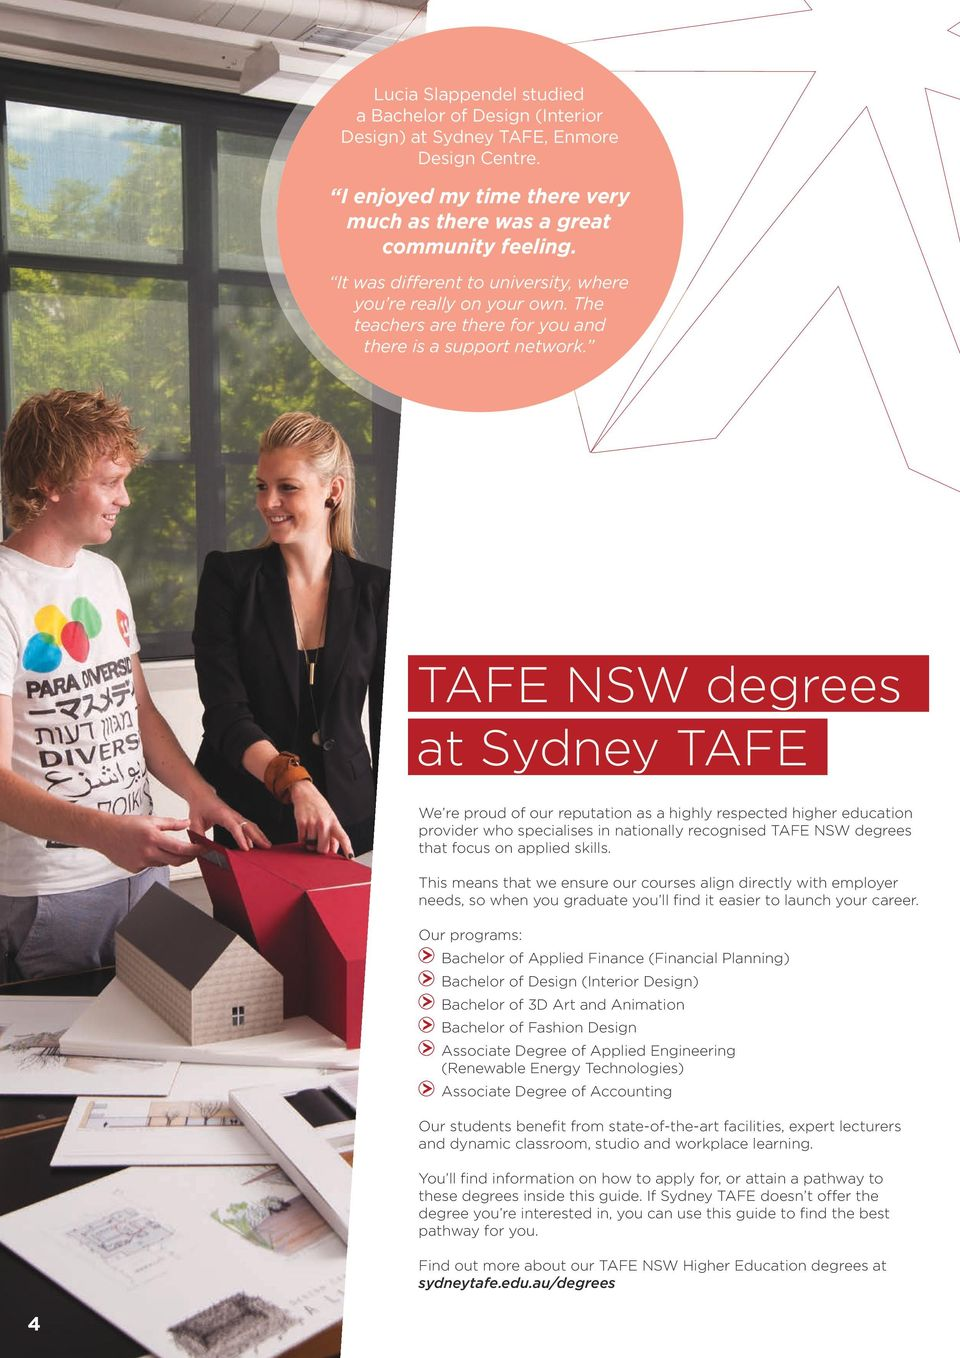 TAFE NSW degrees at Sydney TAFE We re proud of our reputation as a highly respected higher education provider who specialises in nationally recognised TAFE NSW degrees that focus on applied skills.